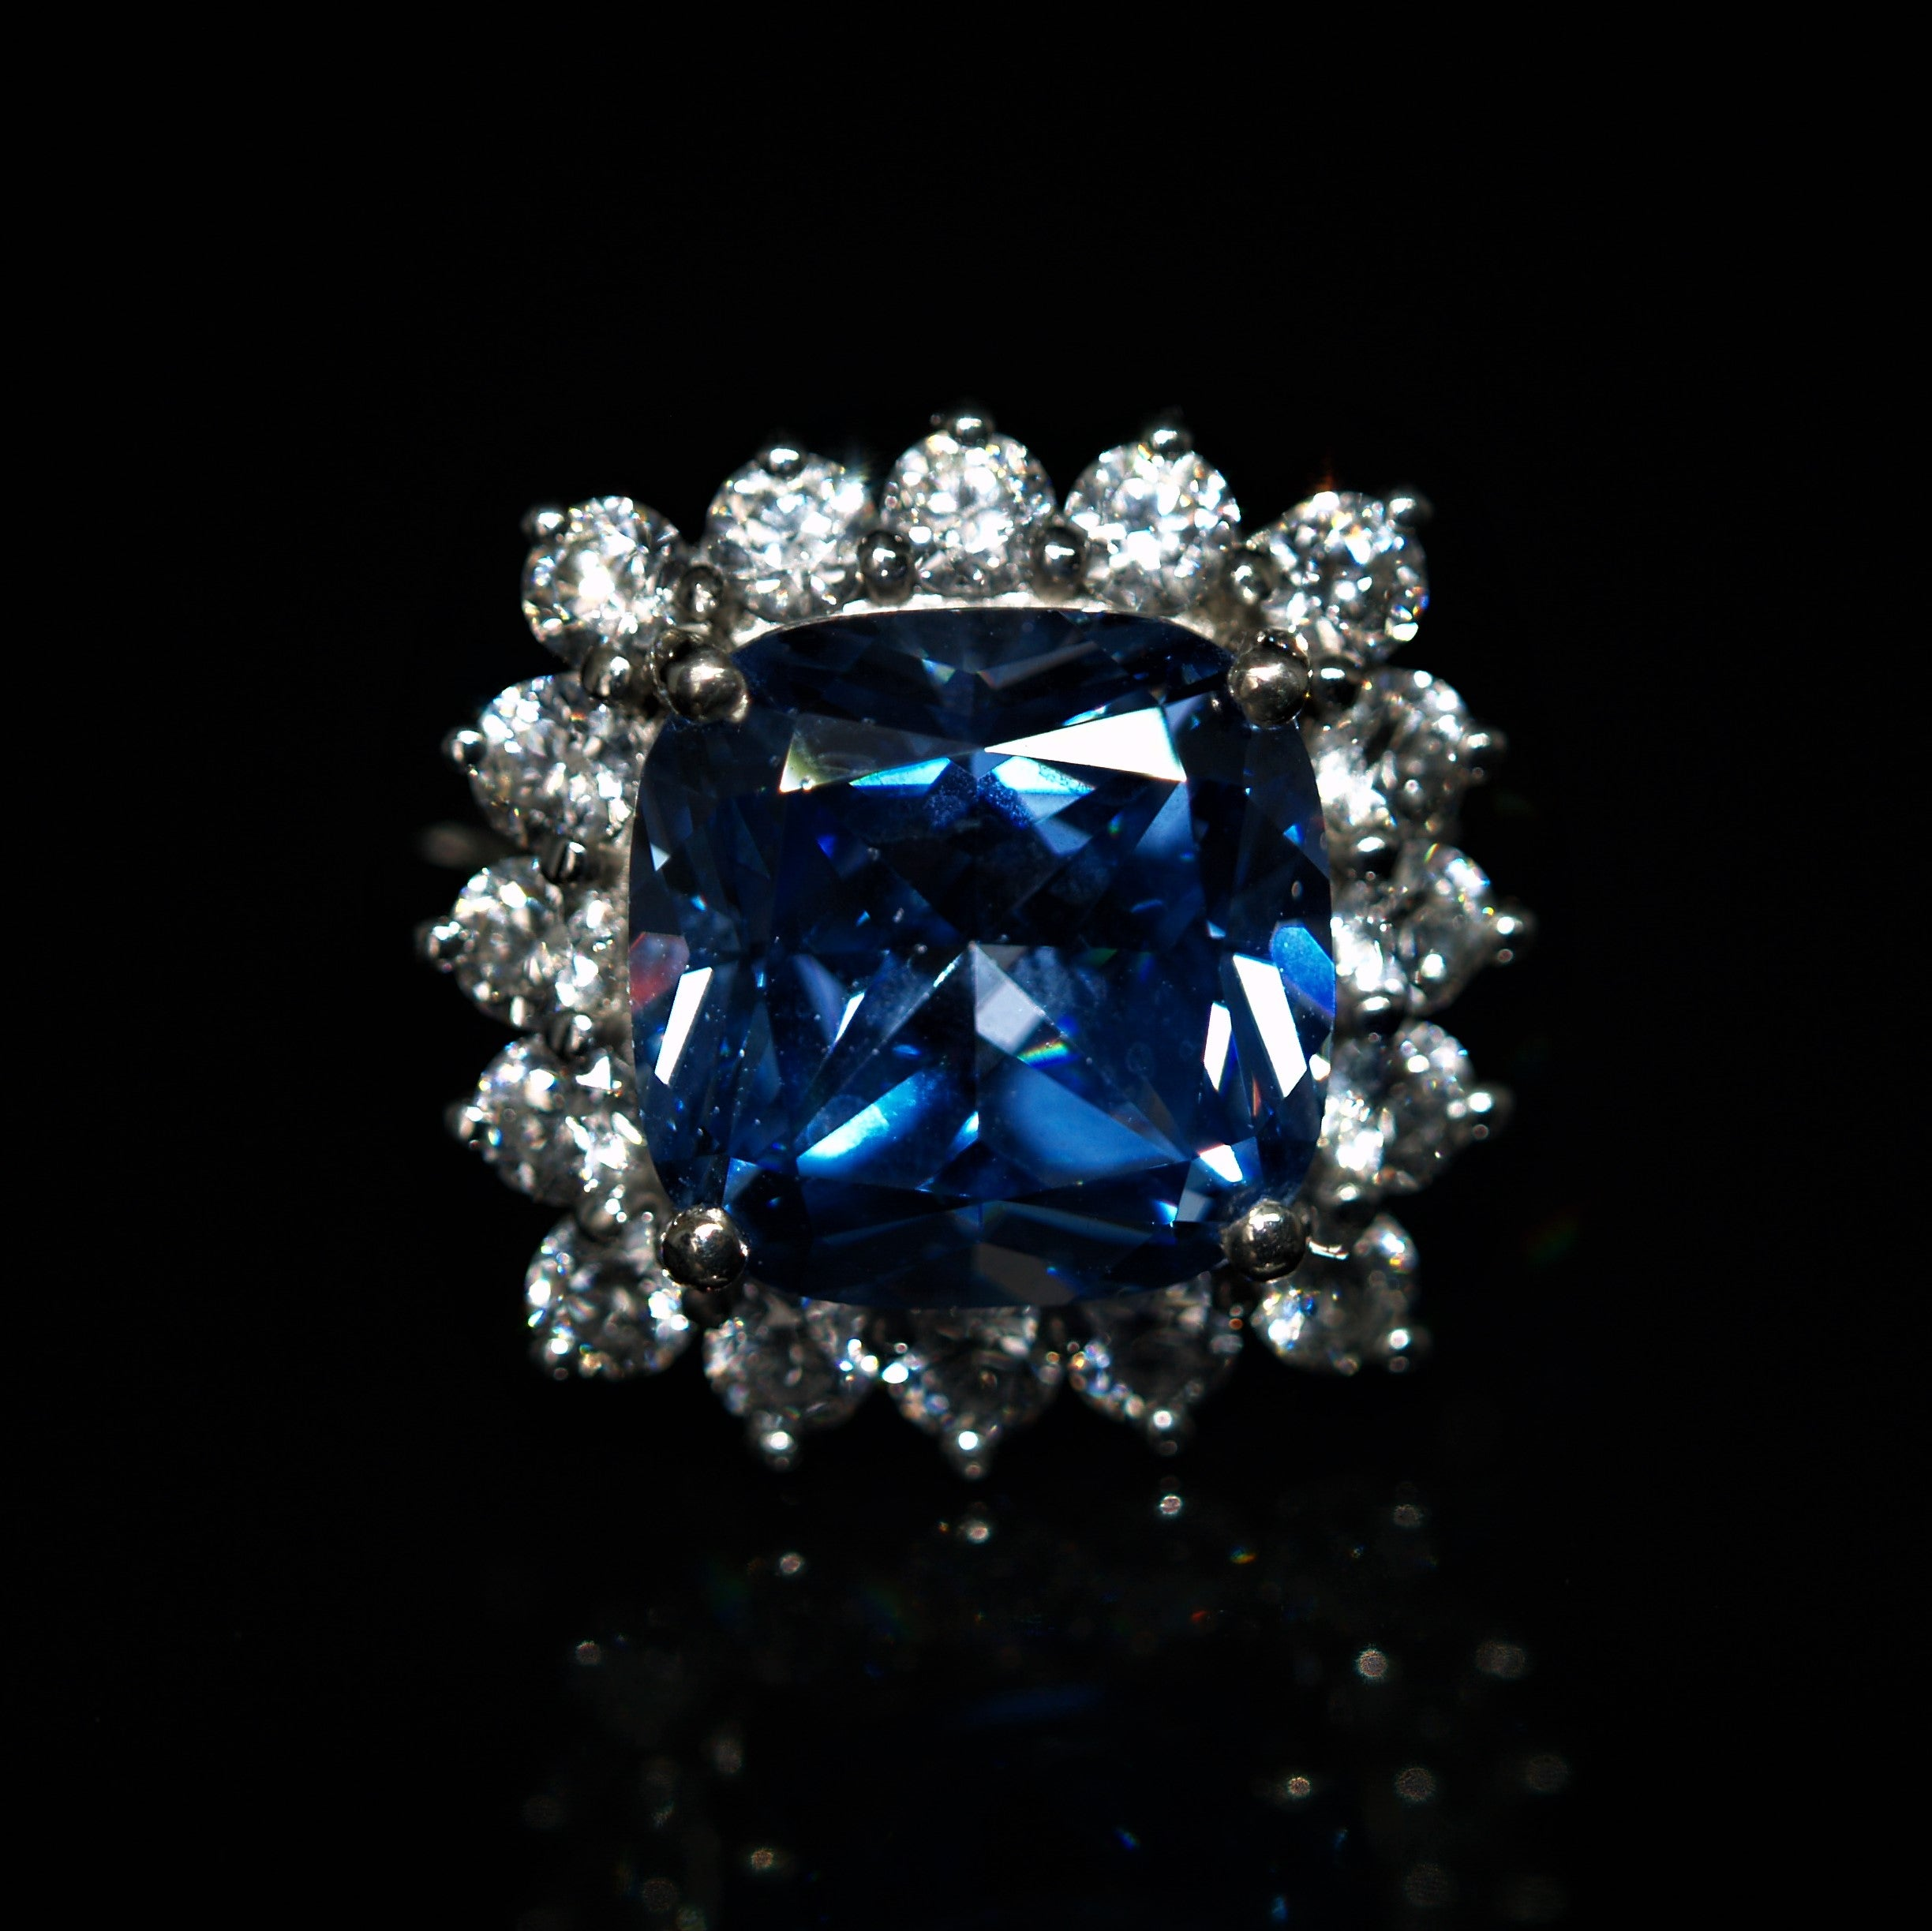 Sterling Silver Blue & White Cubic Zirconia Cocktail Ring.